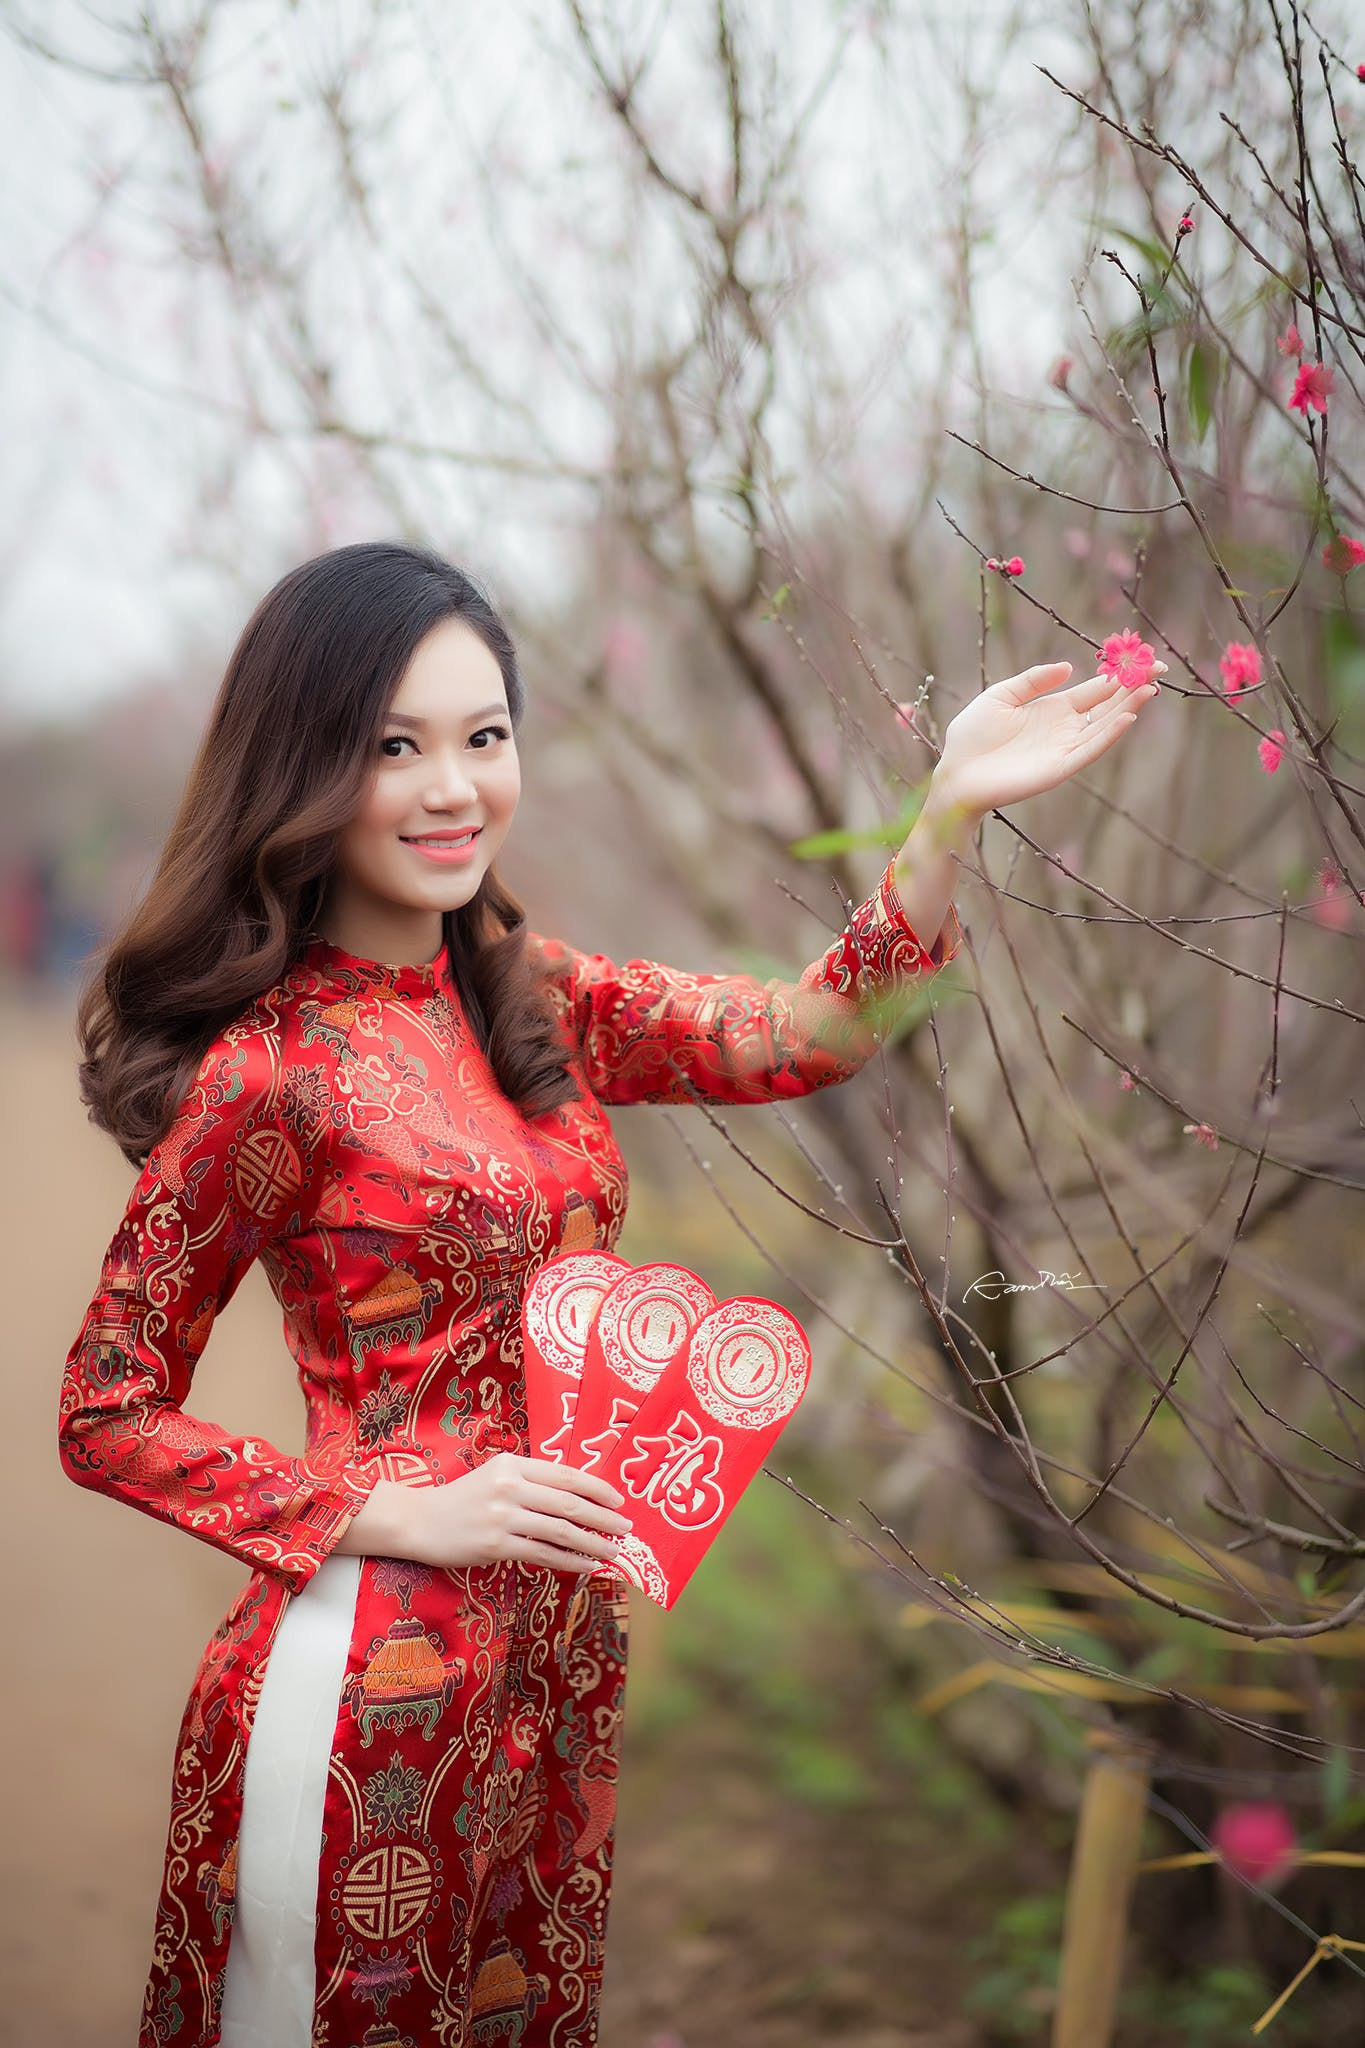 Woman Wearing Red Long-sleeved Dress Holding Pink Petaled Flower